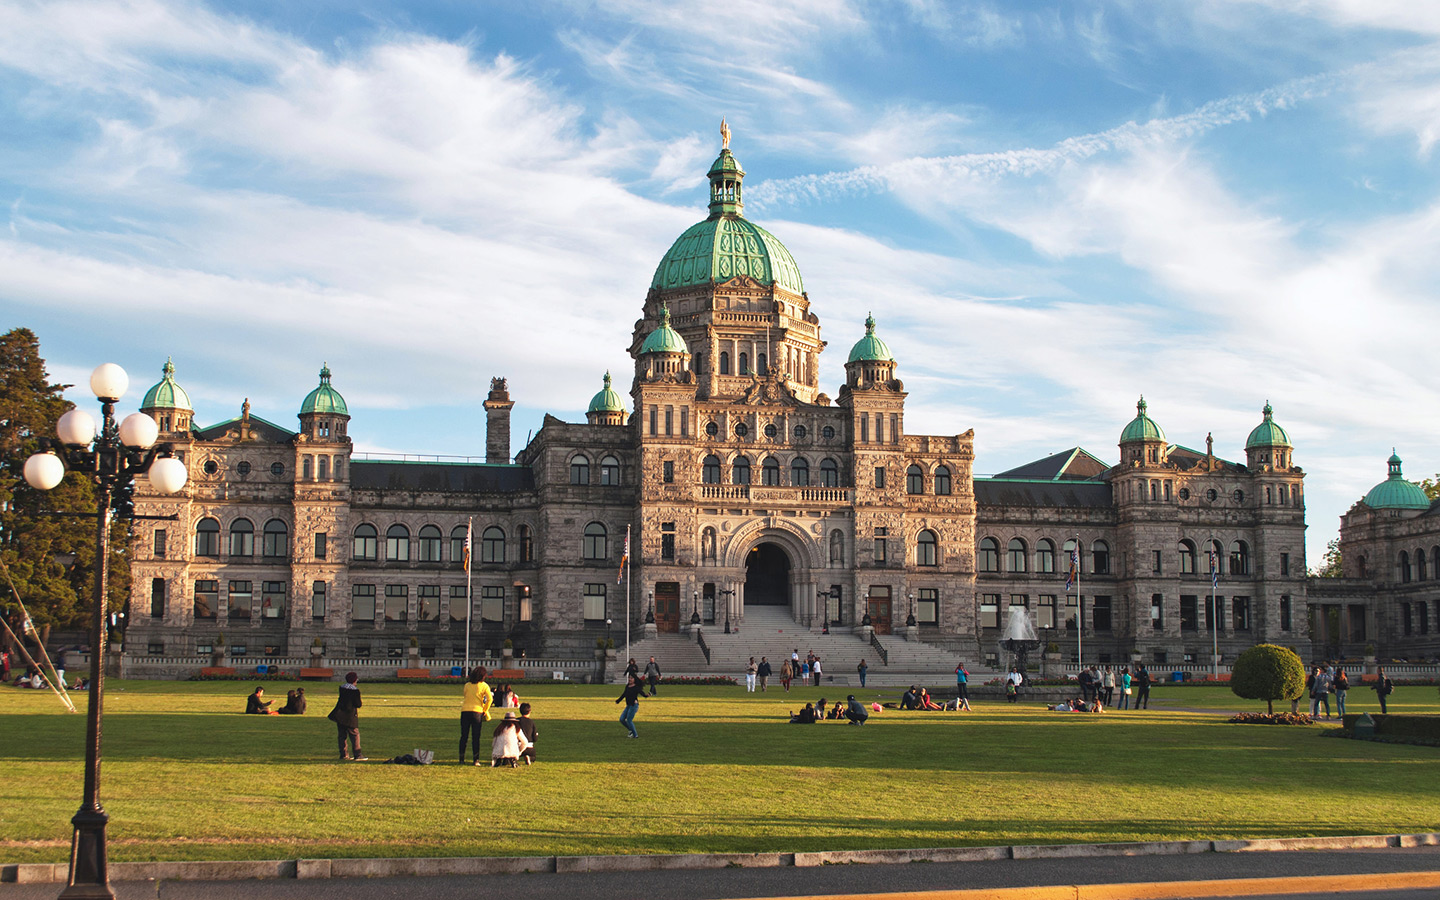 British Columbia's Legislative Building in Victoria, Canada